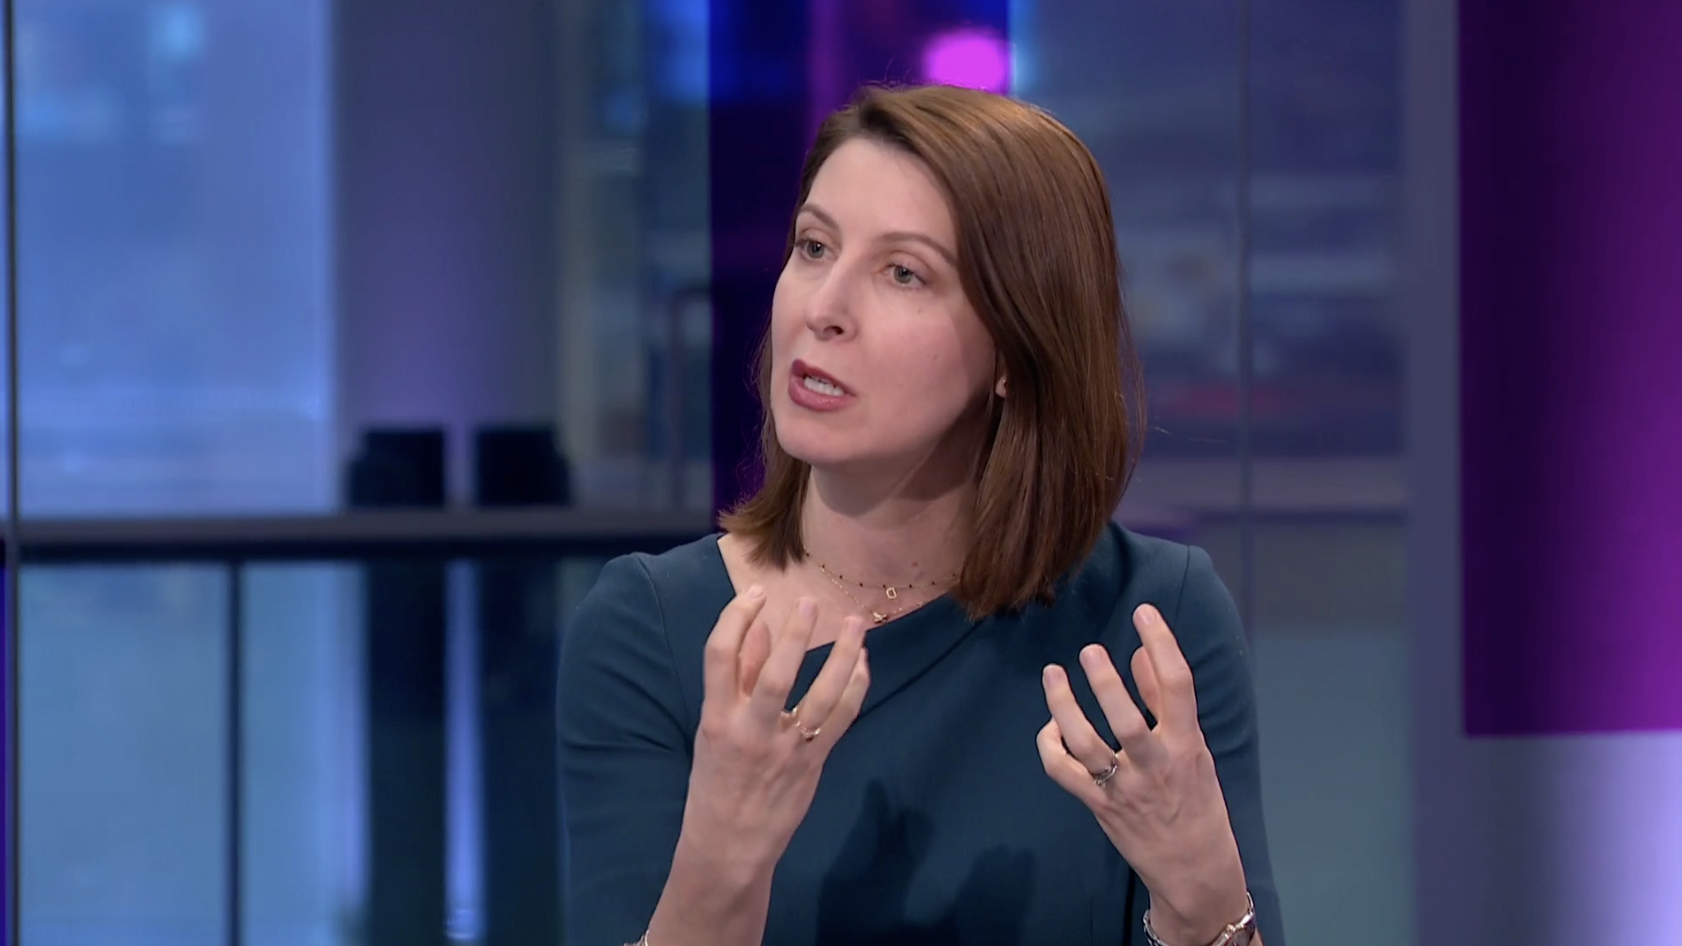 'We don't know if outbreak is contained in China' – economist Diana Choyleva - channel 4